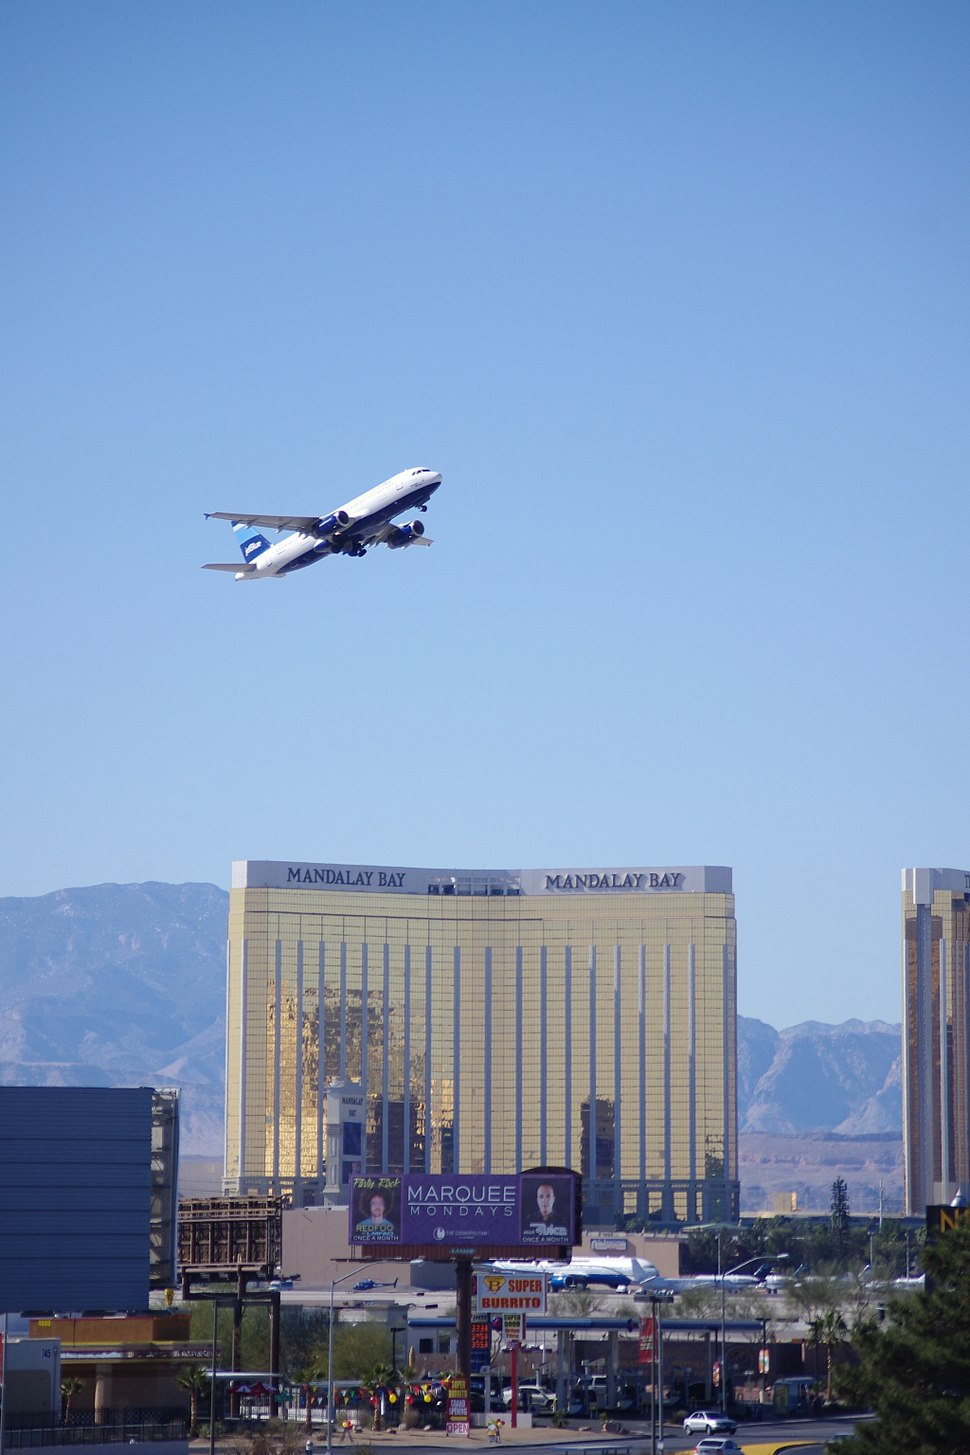 A jetBlue%27s jet is taking off from McCarran Airport